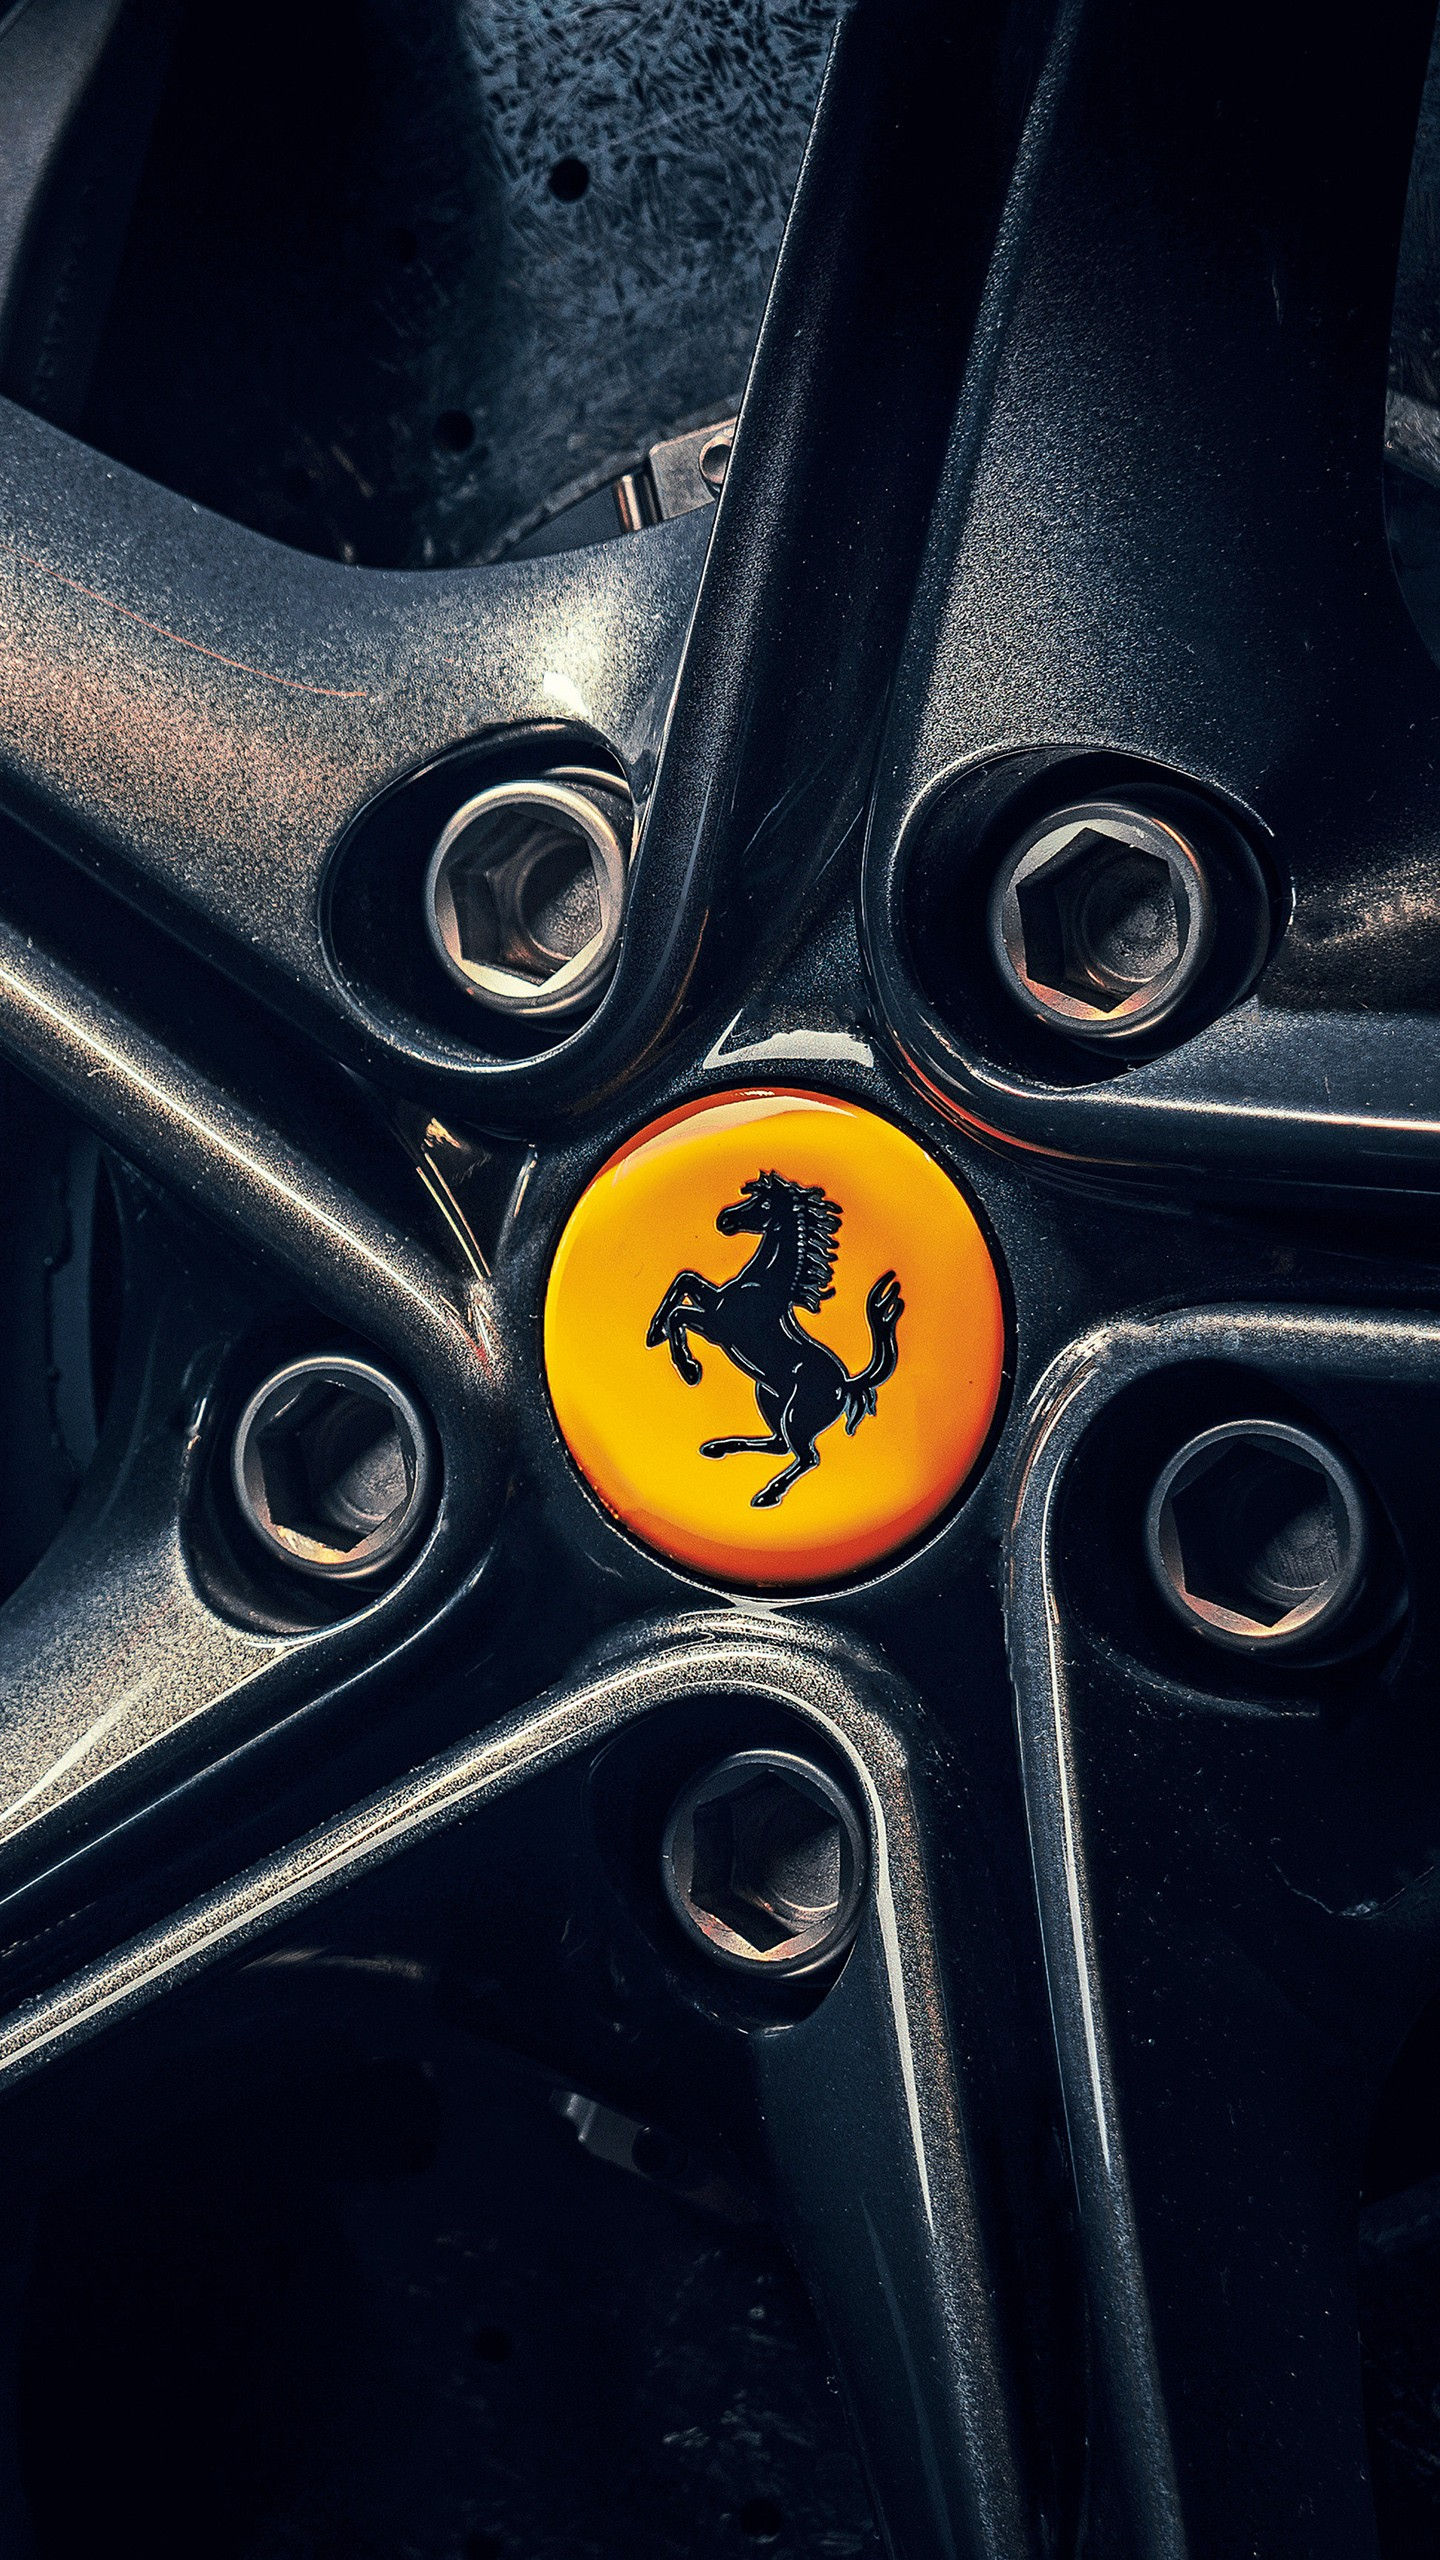 Top 35 Ferrari Logo Wallpapers 4k Hd